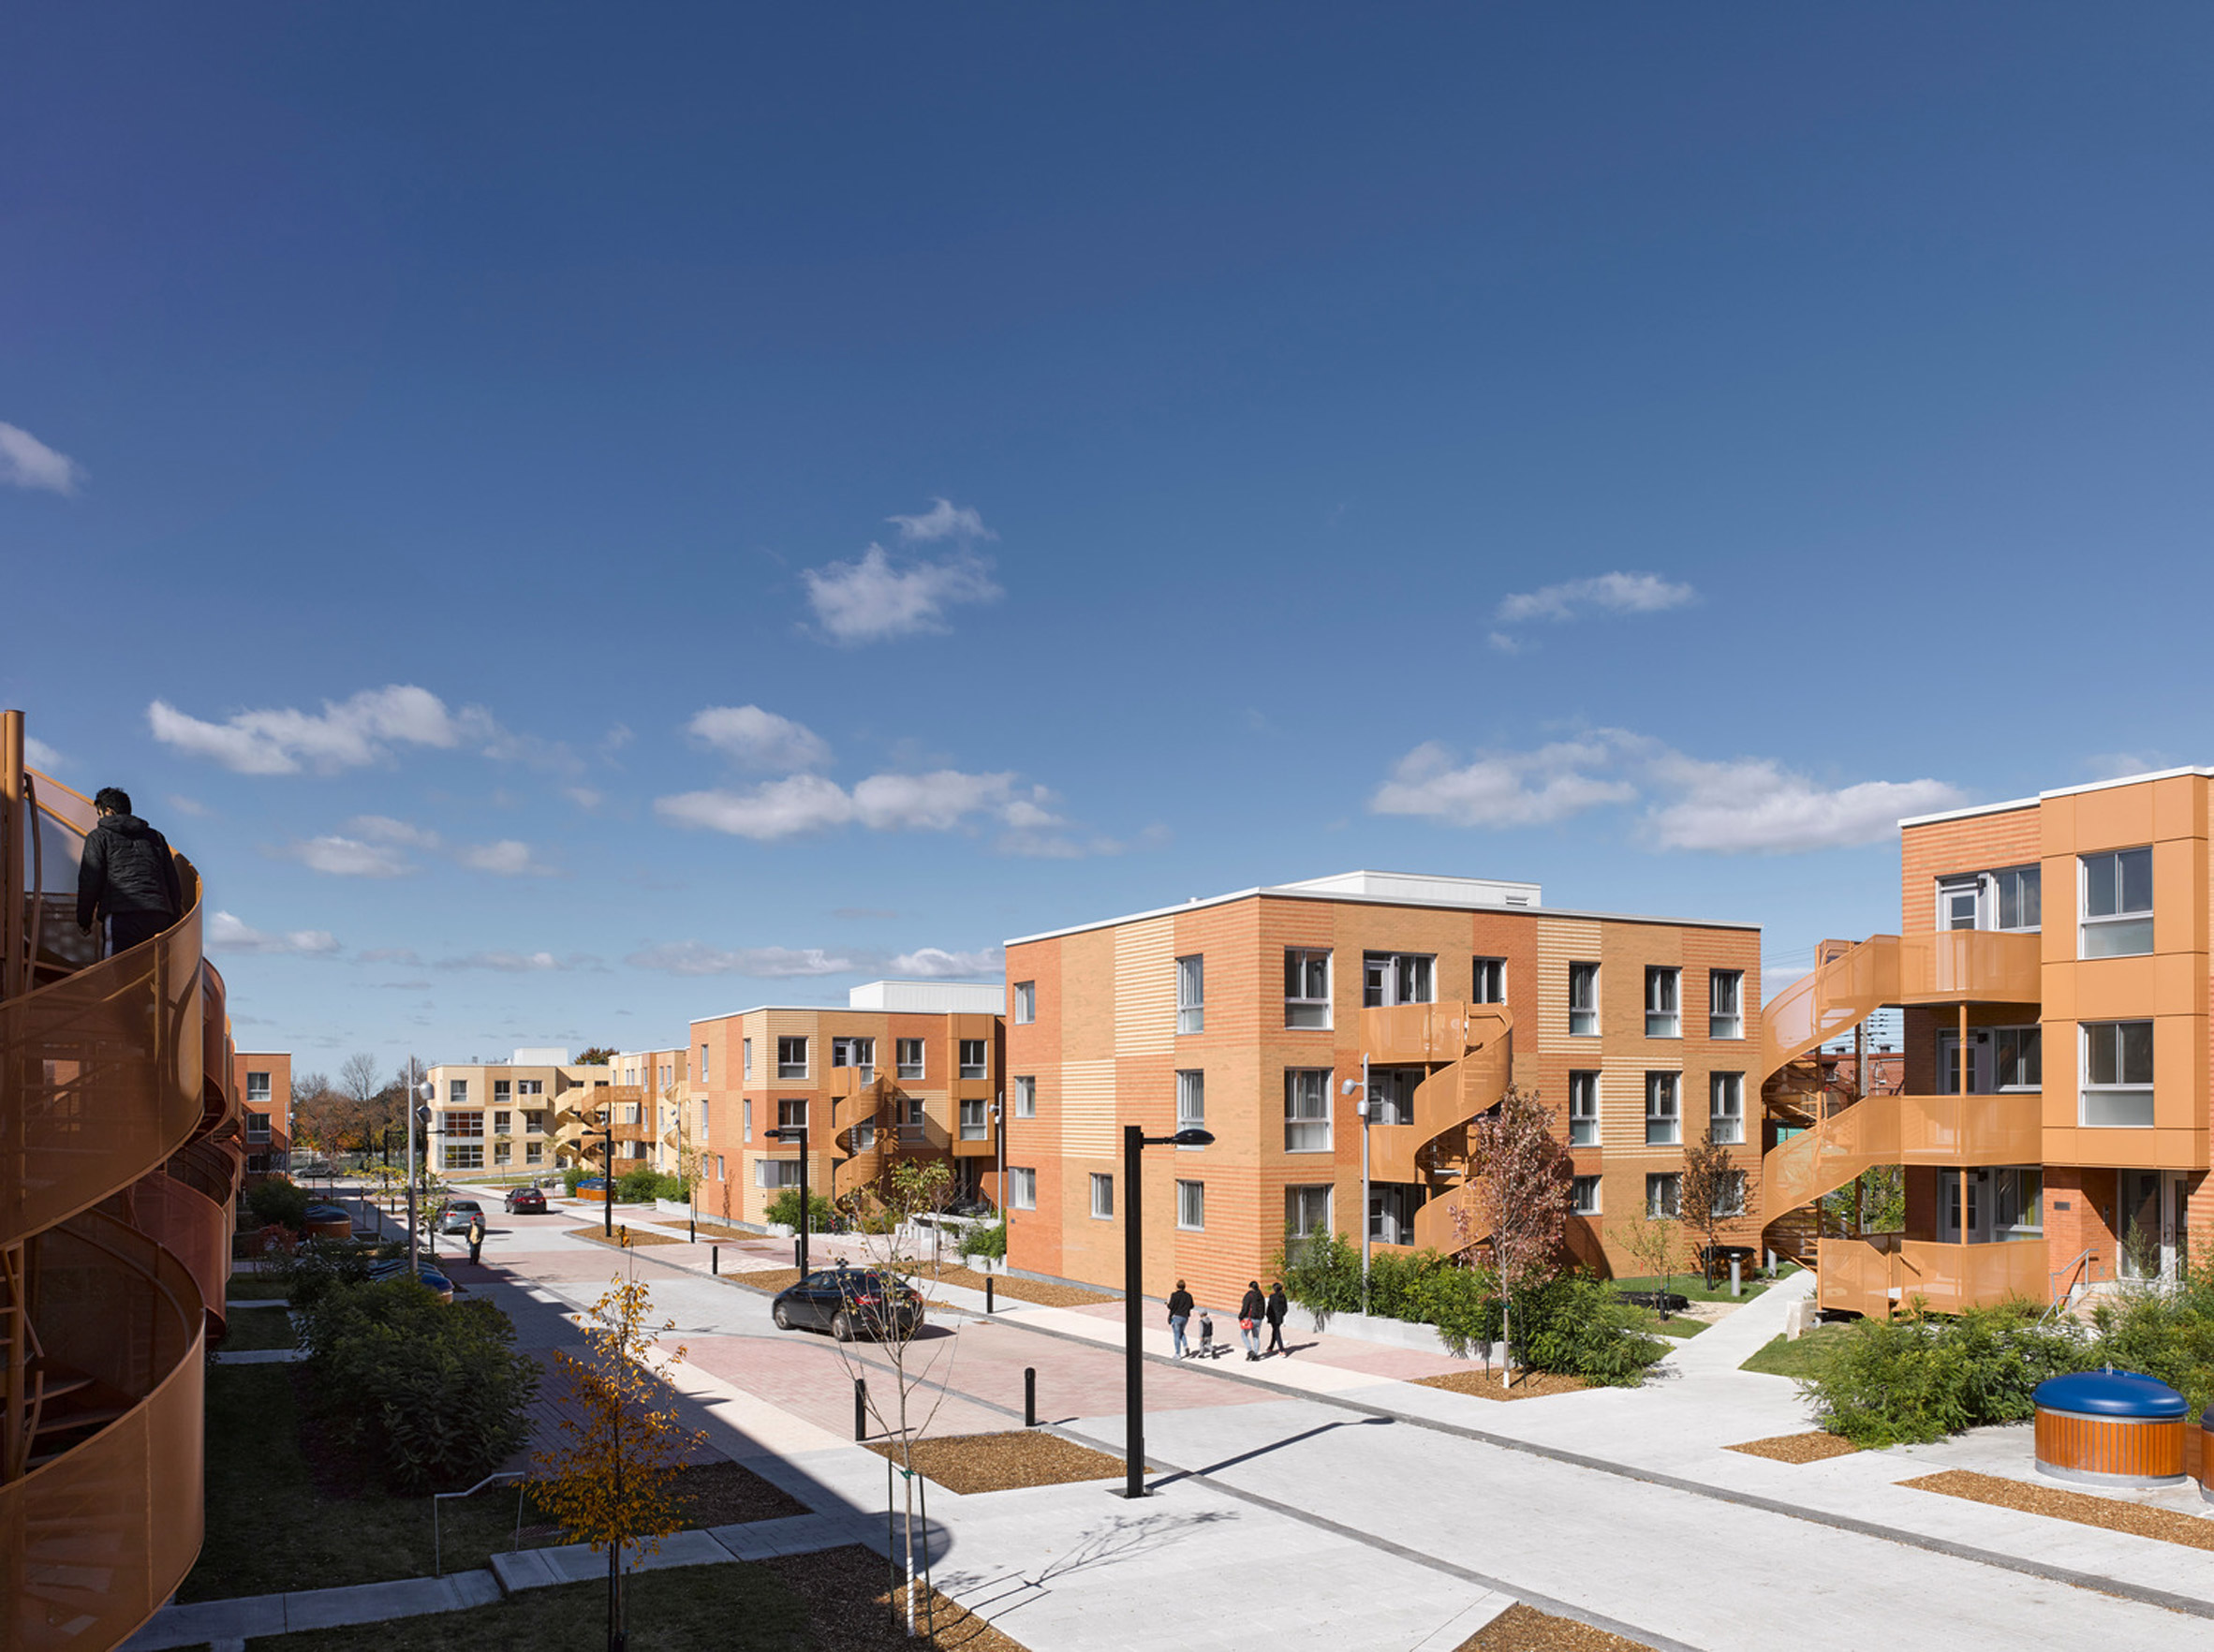 The Habitations Saint-Michel Nord housing complex in Montreal